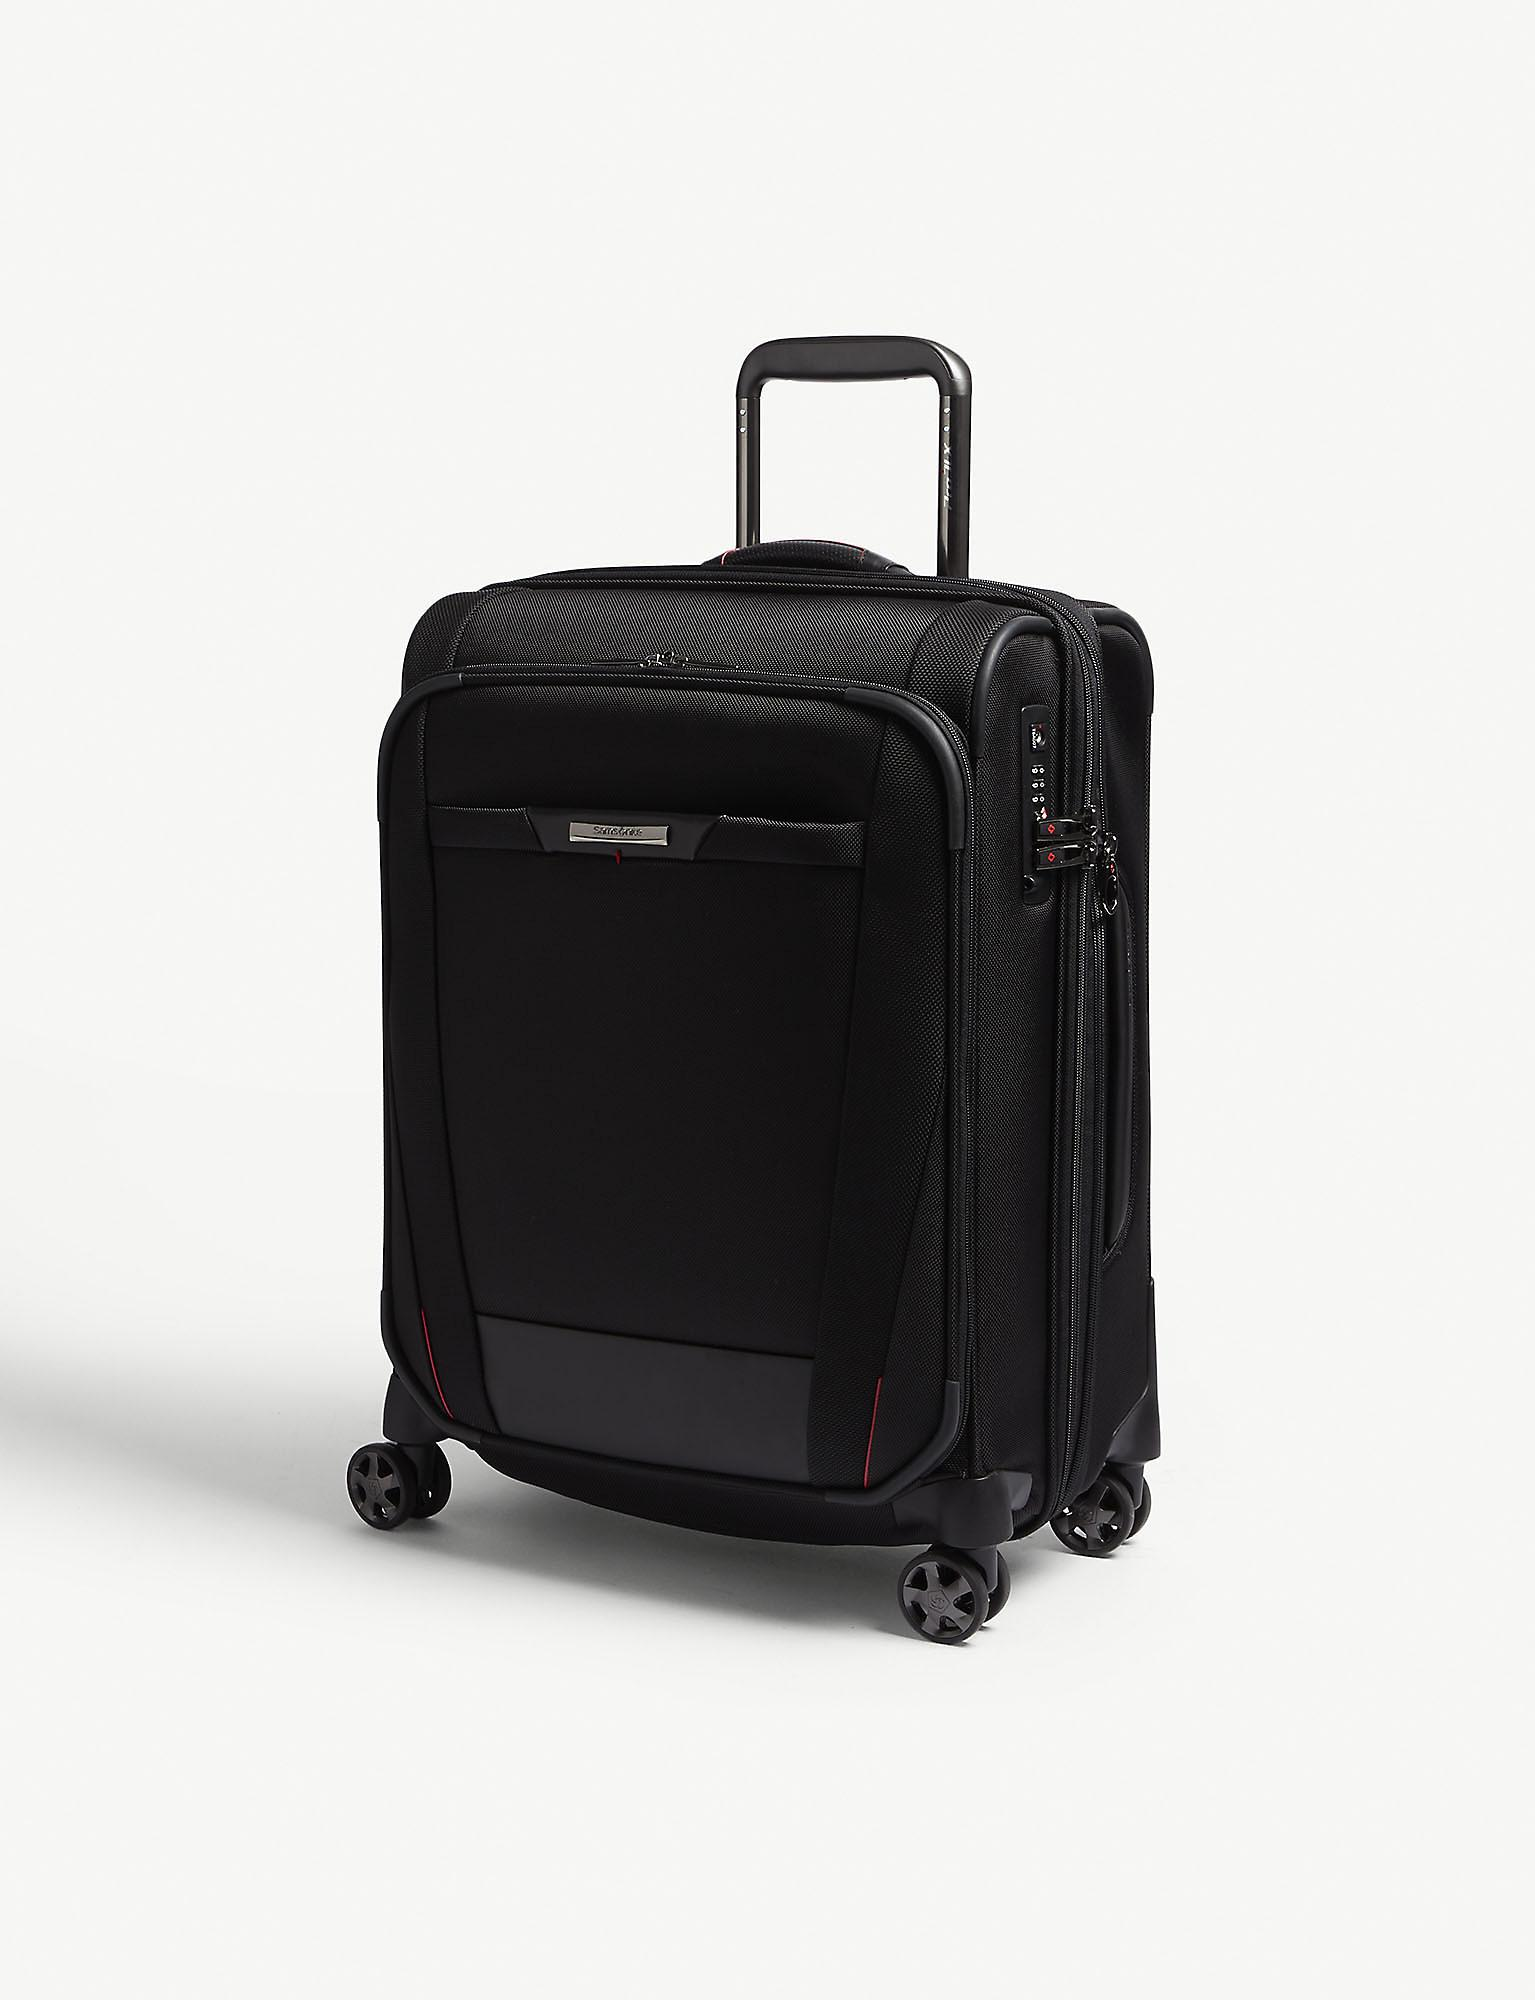 4ac90bbe Samsonite Black Pro Dlx 5 Spinner Cabin Size Suitcase in Black for ...